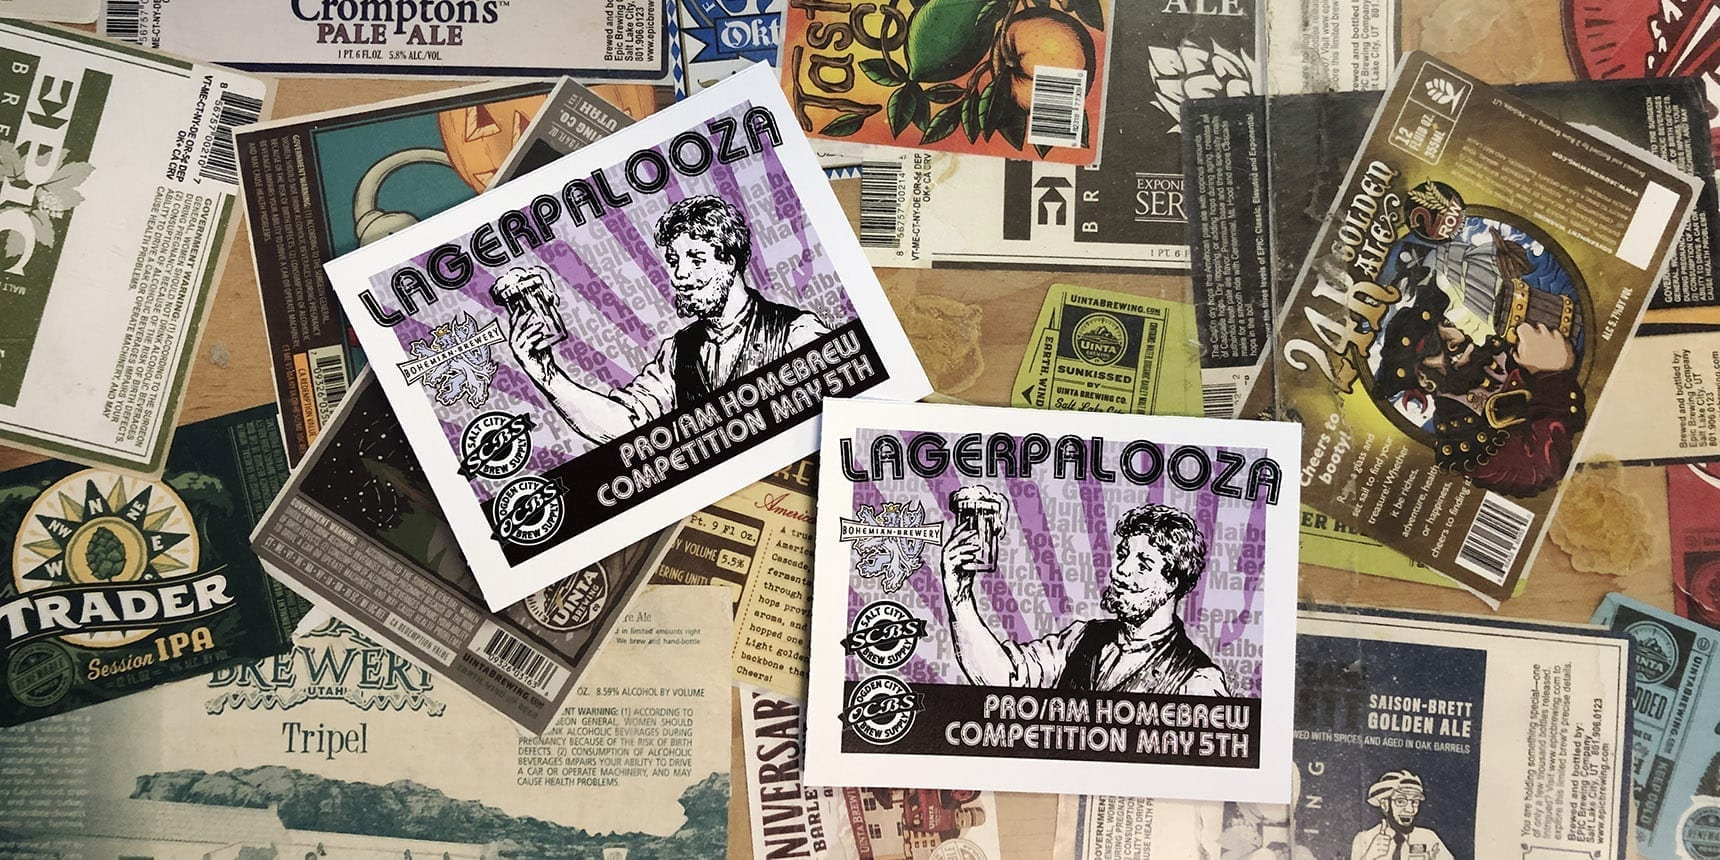 Lagerpalooza 2019 - Featured - Utah Beer News